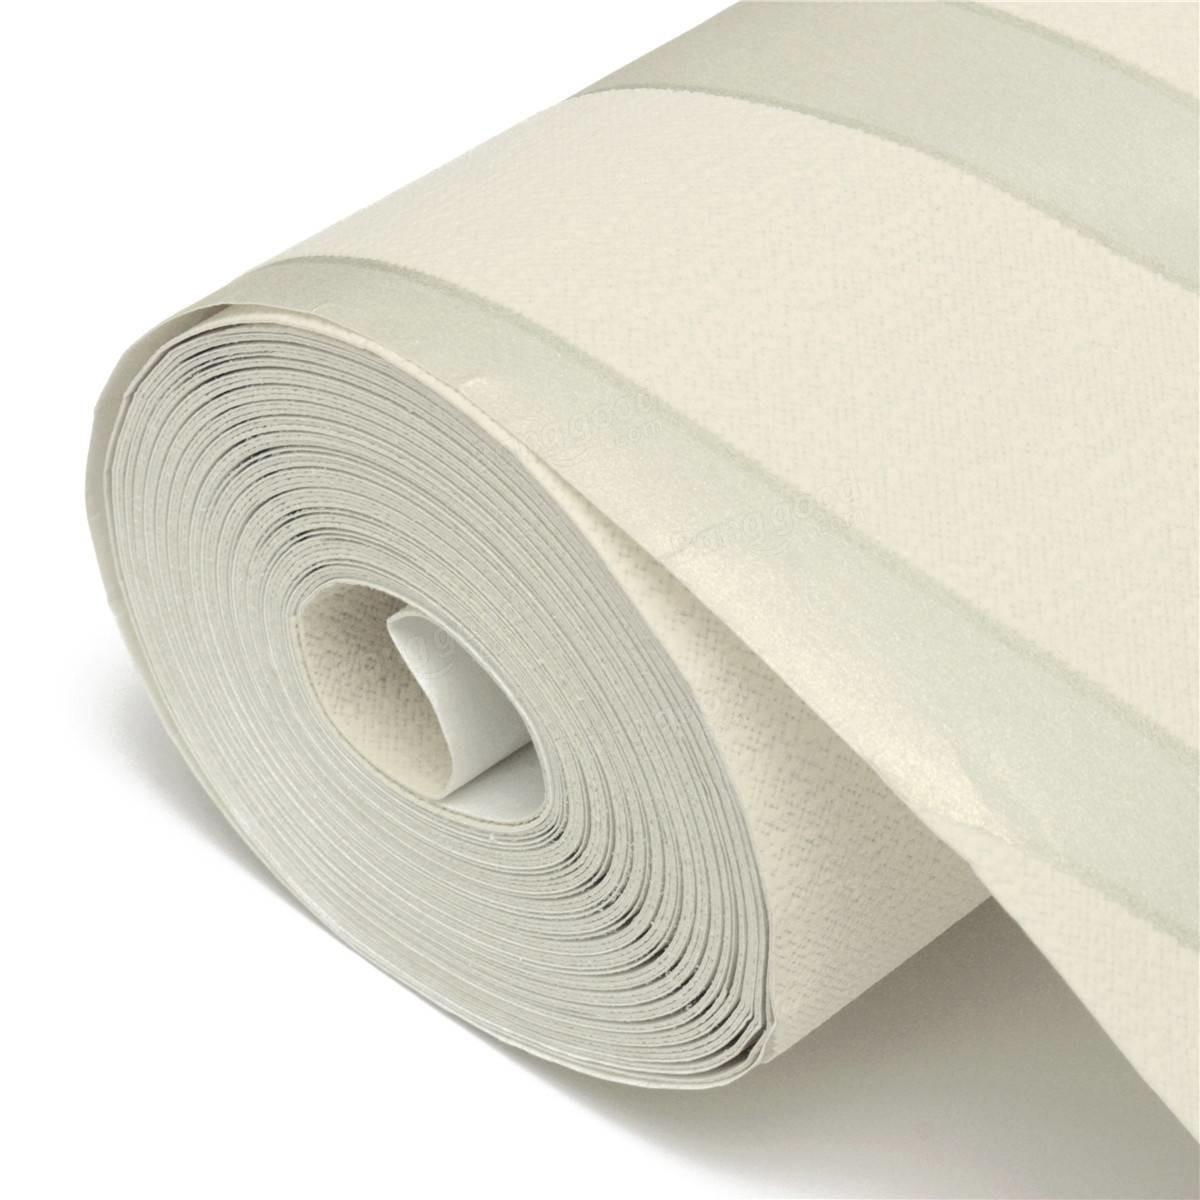 10m Crescent Wave Stripes Embossed Non Woven Flocking